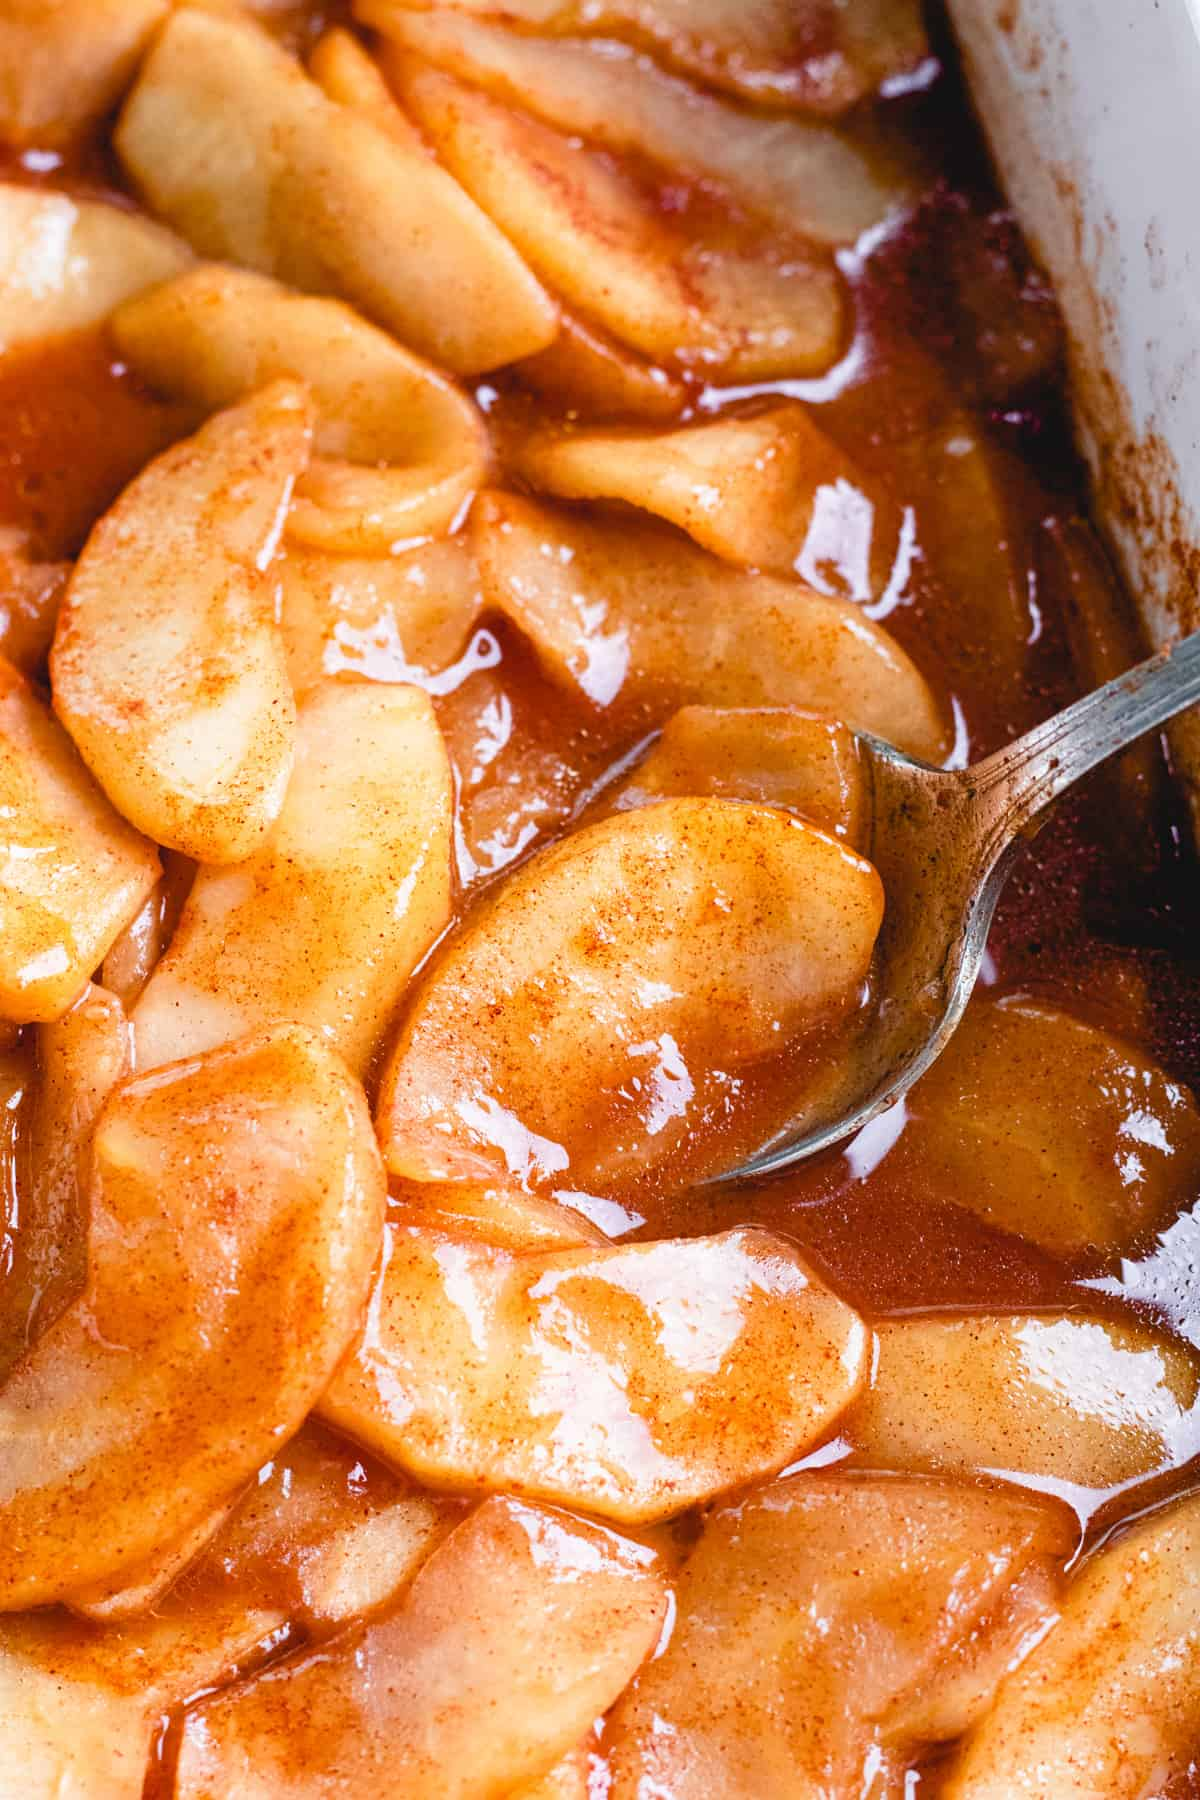 Cinnamon Baked Apples in caramelized sauce in white baking dish.